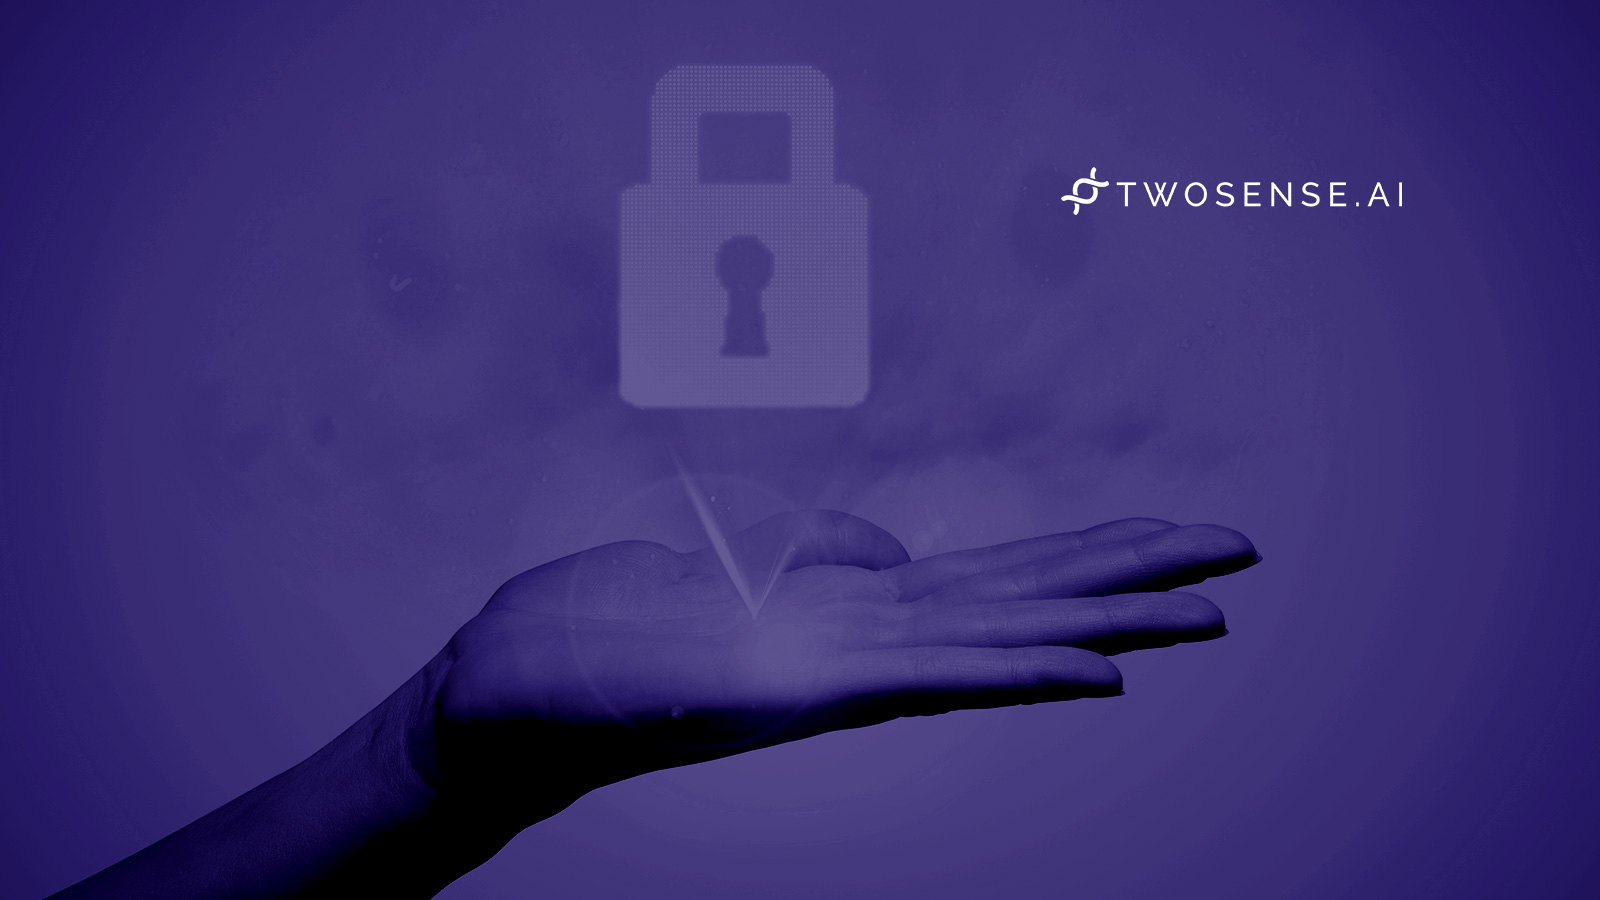 TWOSENSE AI Awarded DoD $2 42 Million Security Contract for